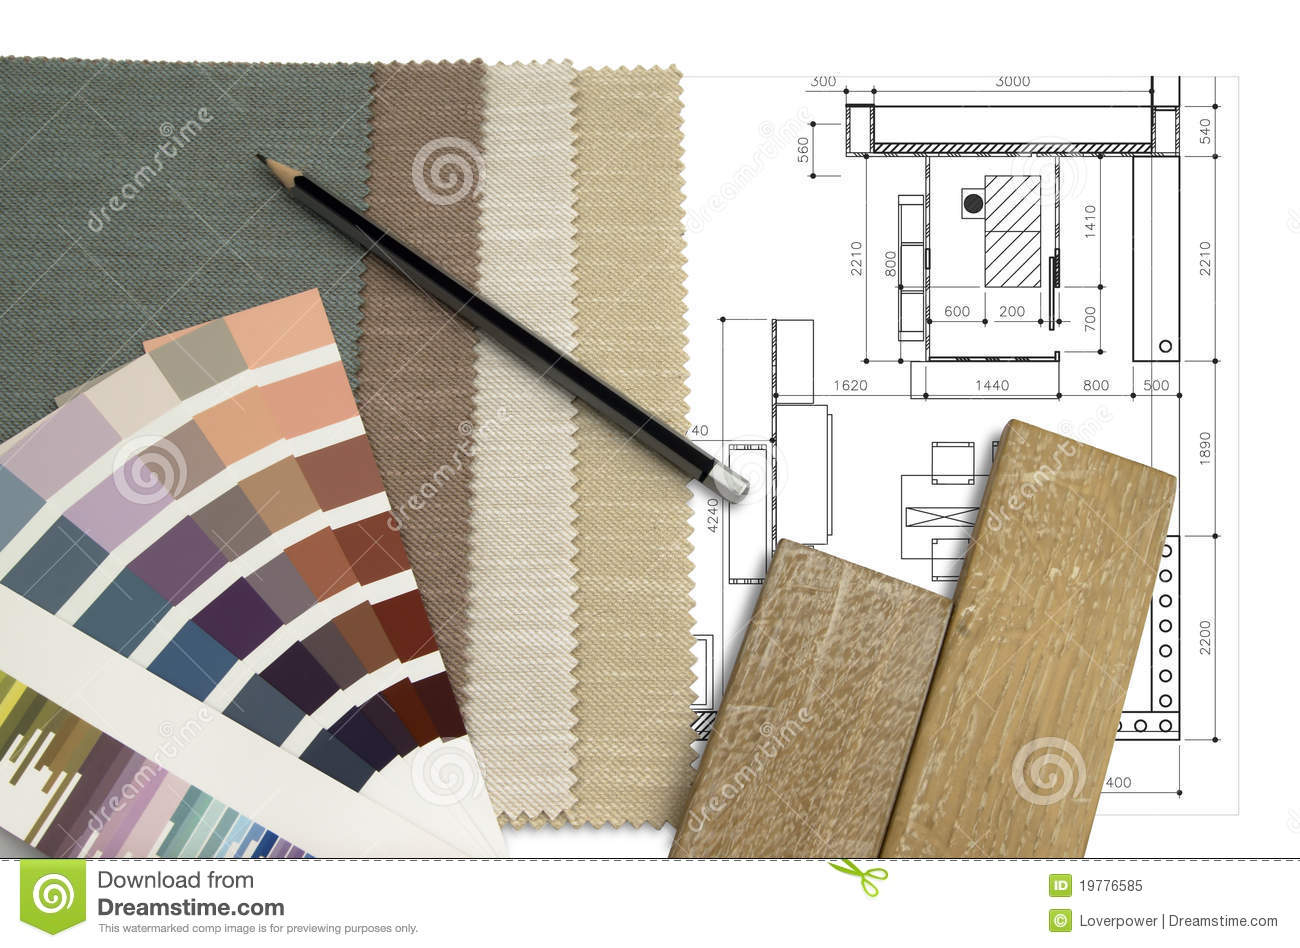 Worktable interior design